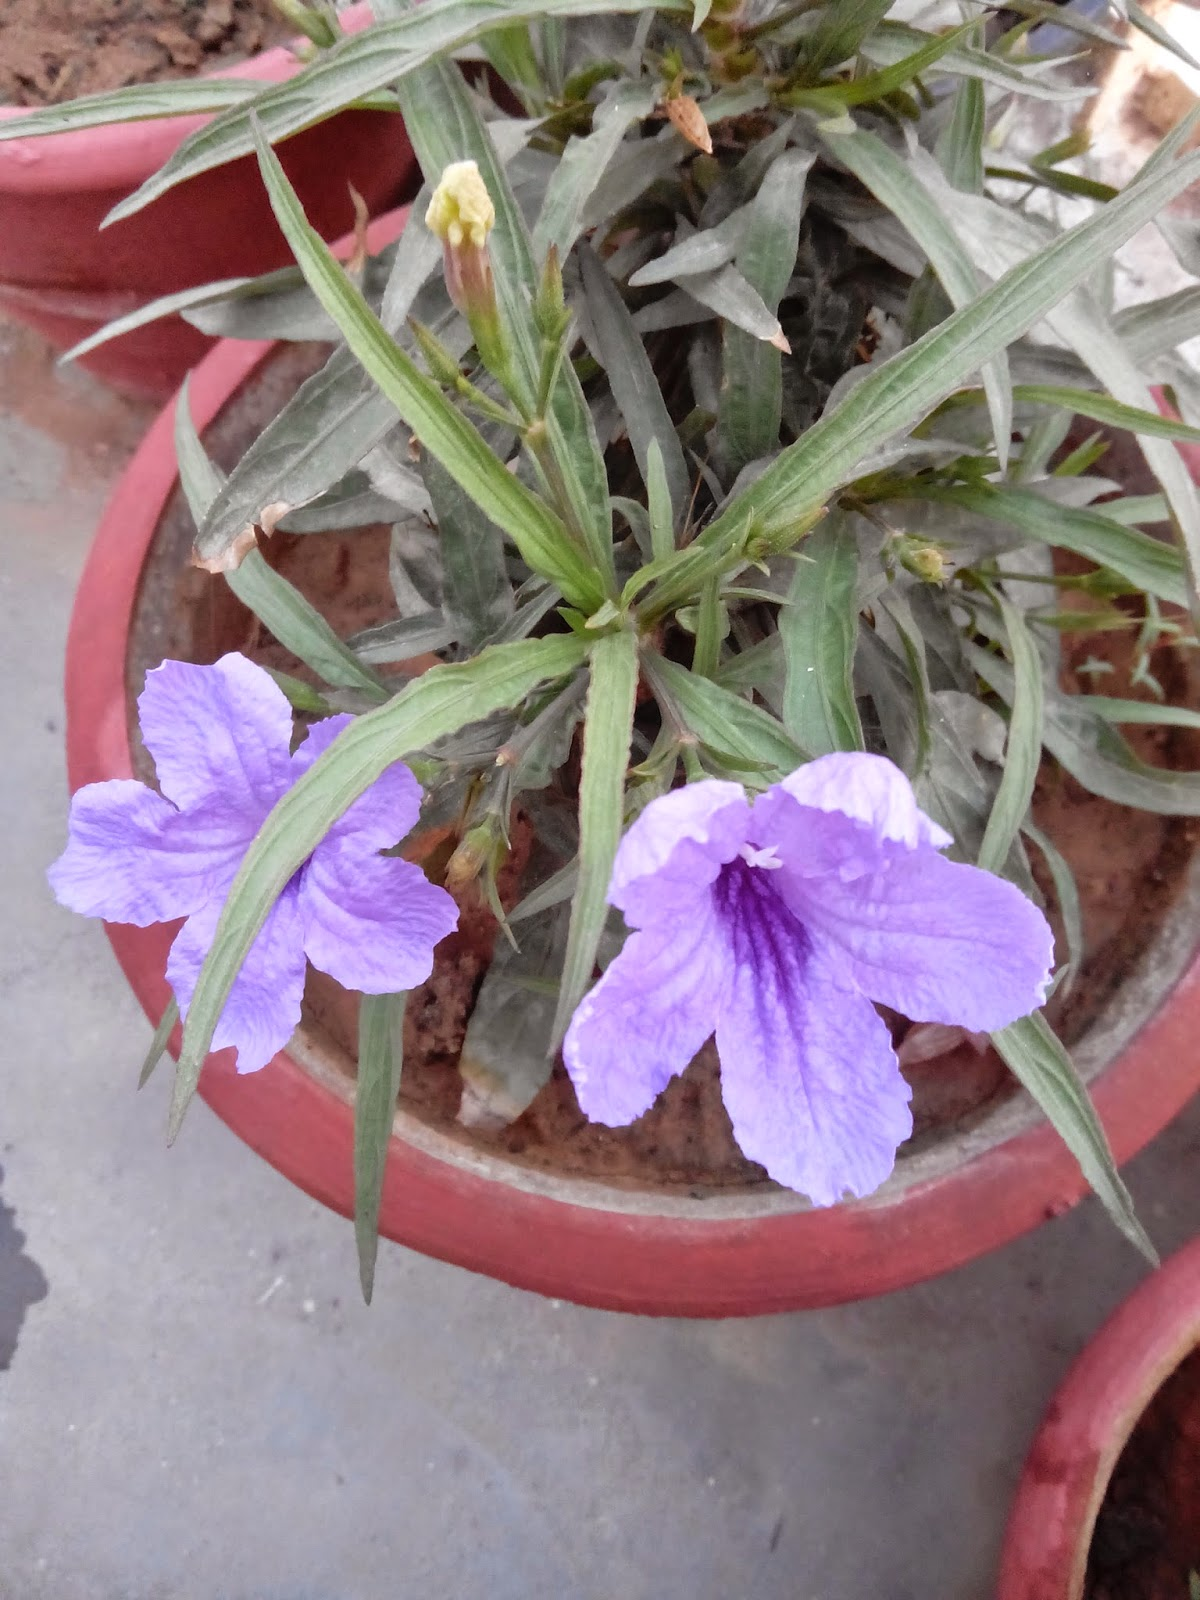 bageecha in hindi Buy outdoor & indoor plants online in india at best prices from mybageechawide range, fast delivery & prompt supportcod availablebuy plants online now.